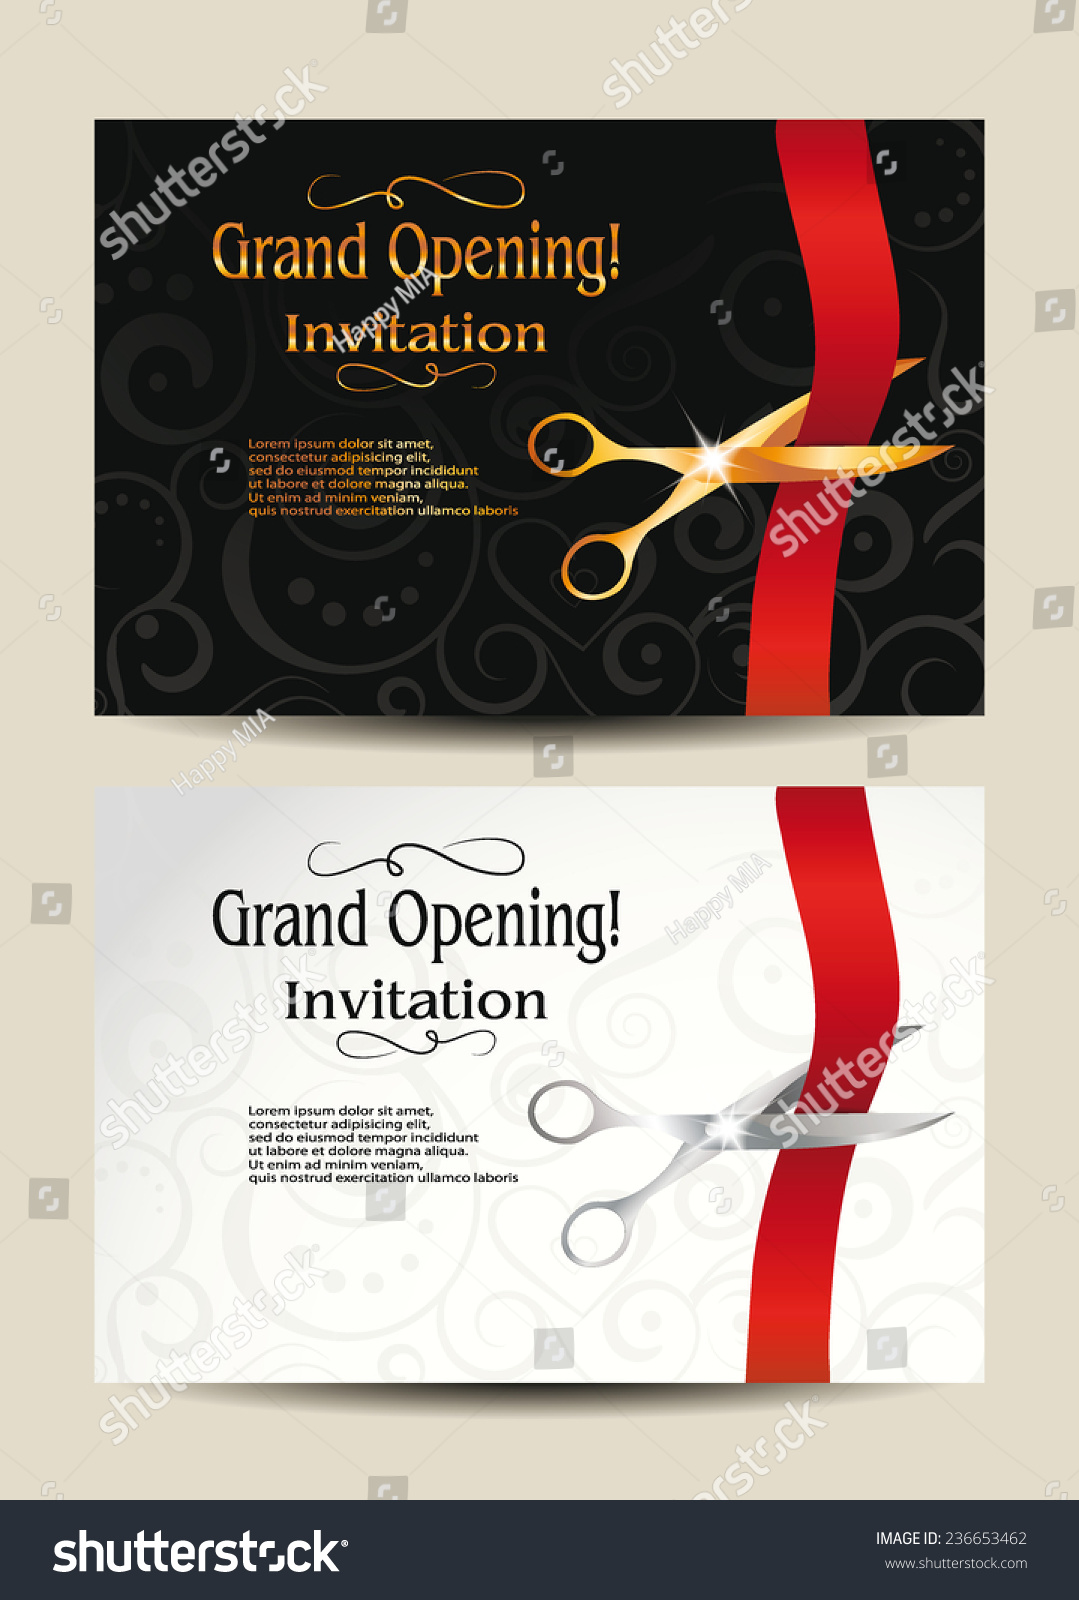 Royalty Free Grand Opening Invitation Cards 236653462 Stock Photo